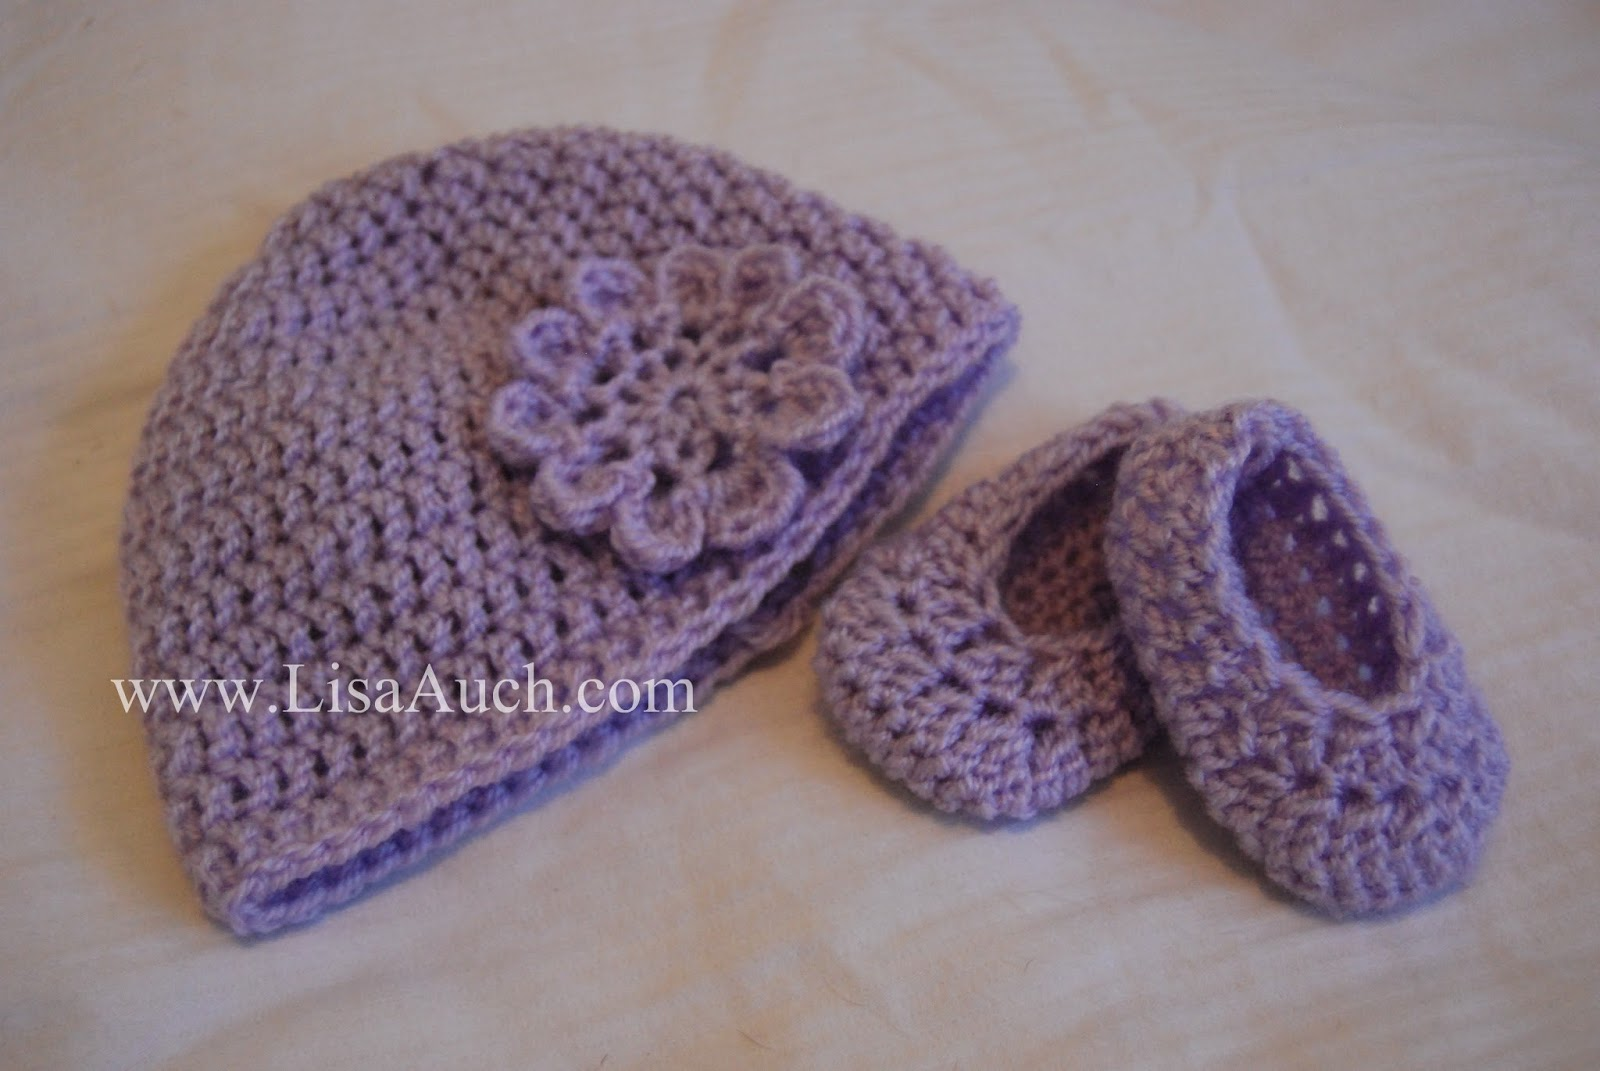 Crochet Child Hat Pattern Free : Free Crochet Cap Patterns images